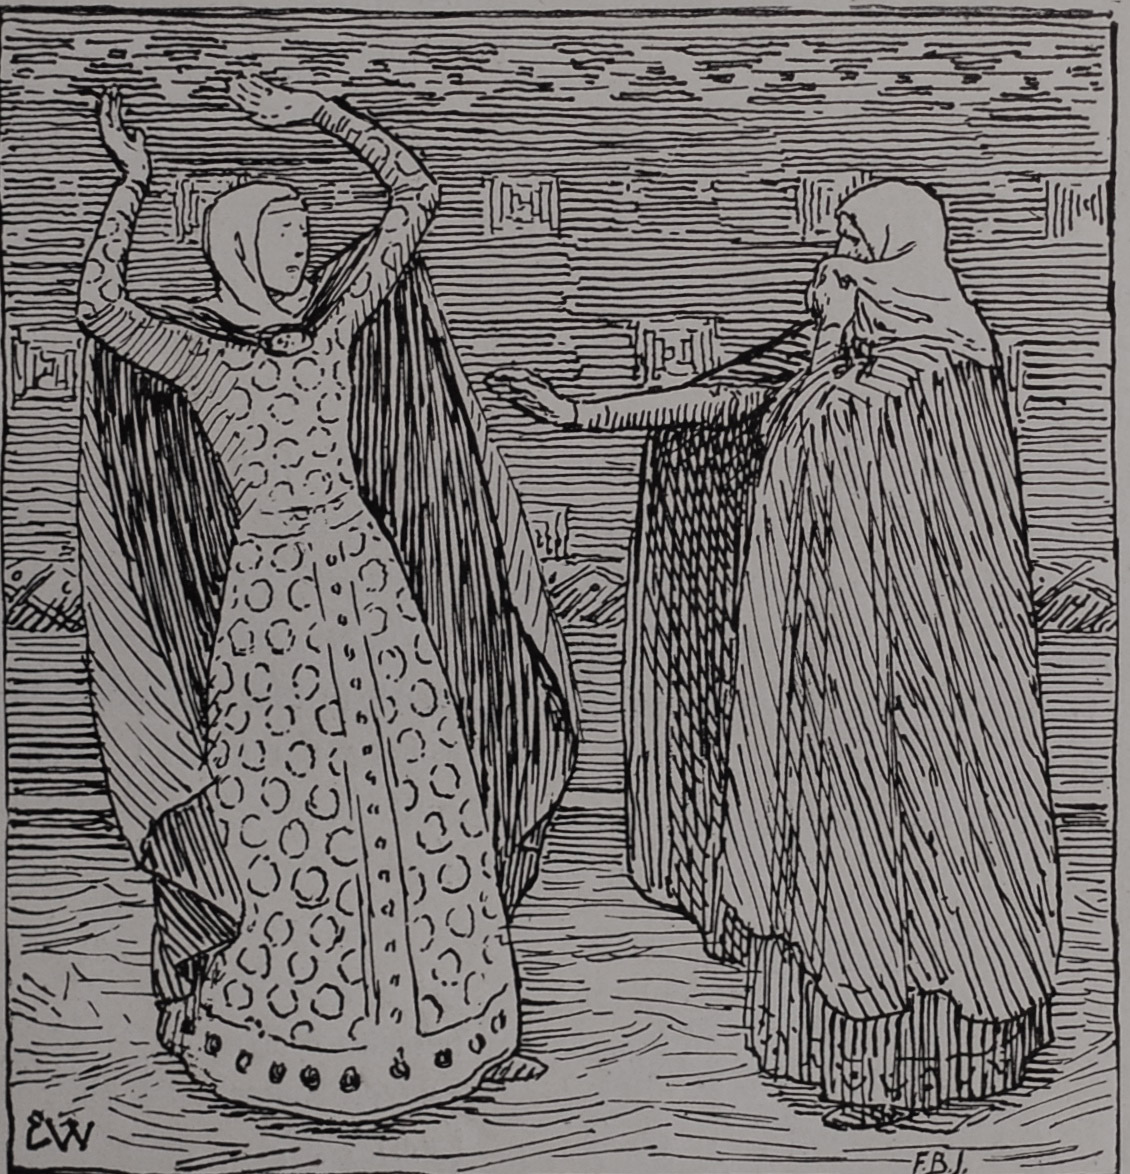 Queen Álöf hin Ríka and Queen Yrsa